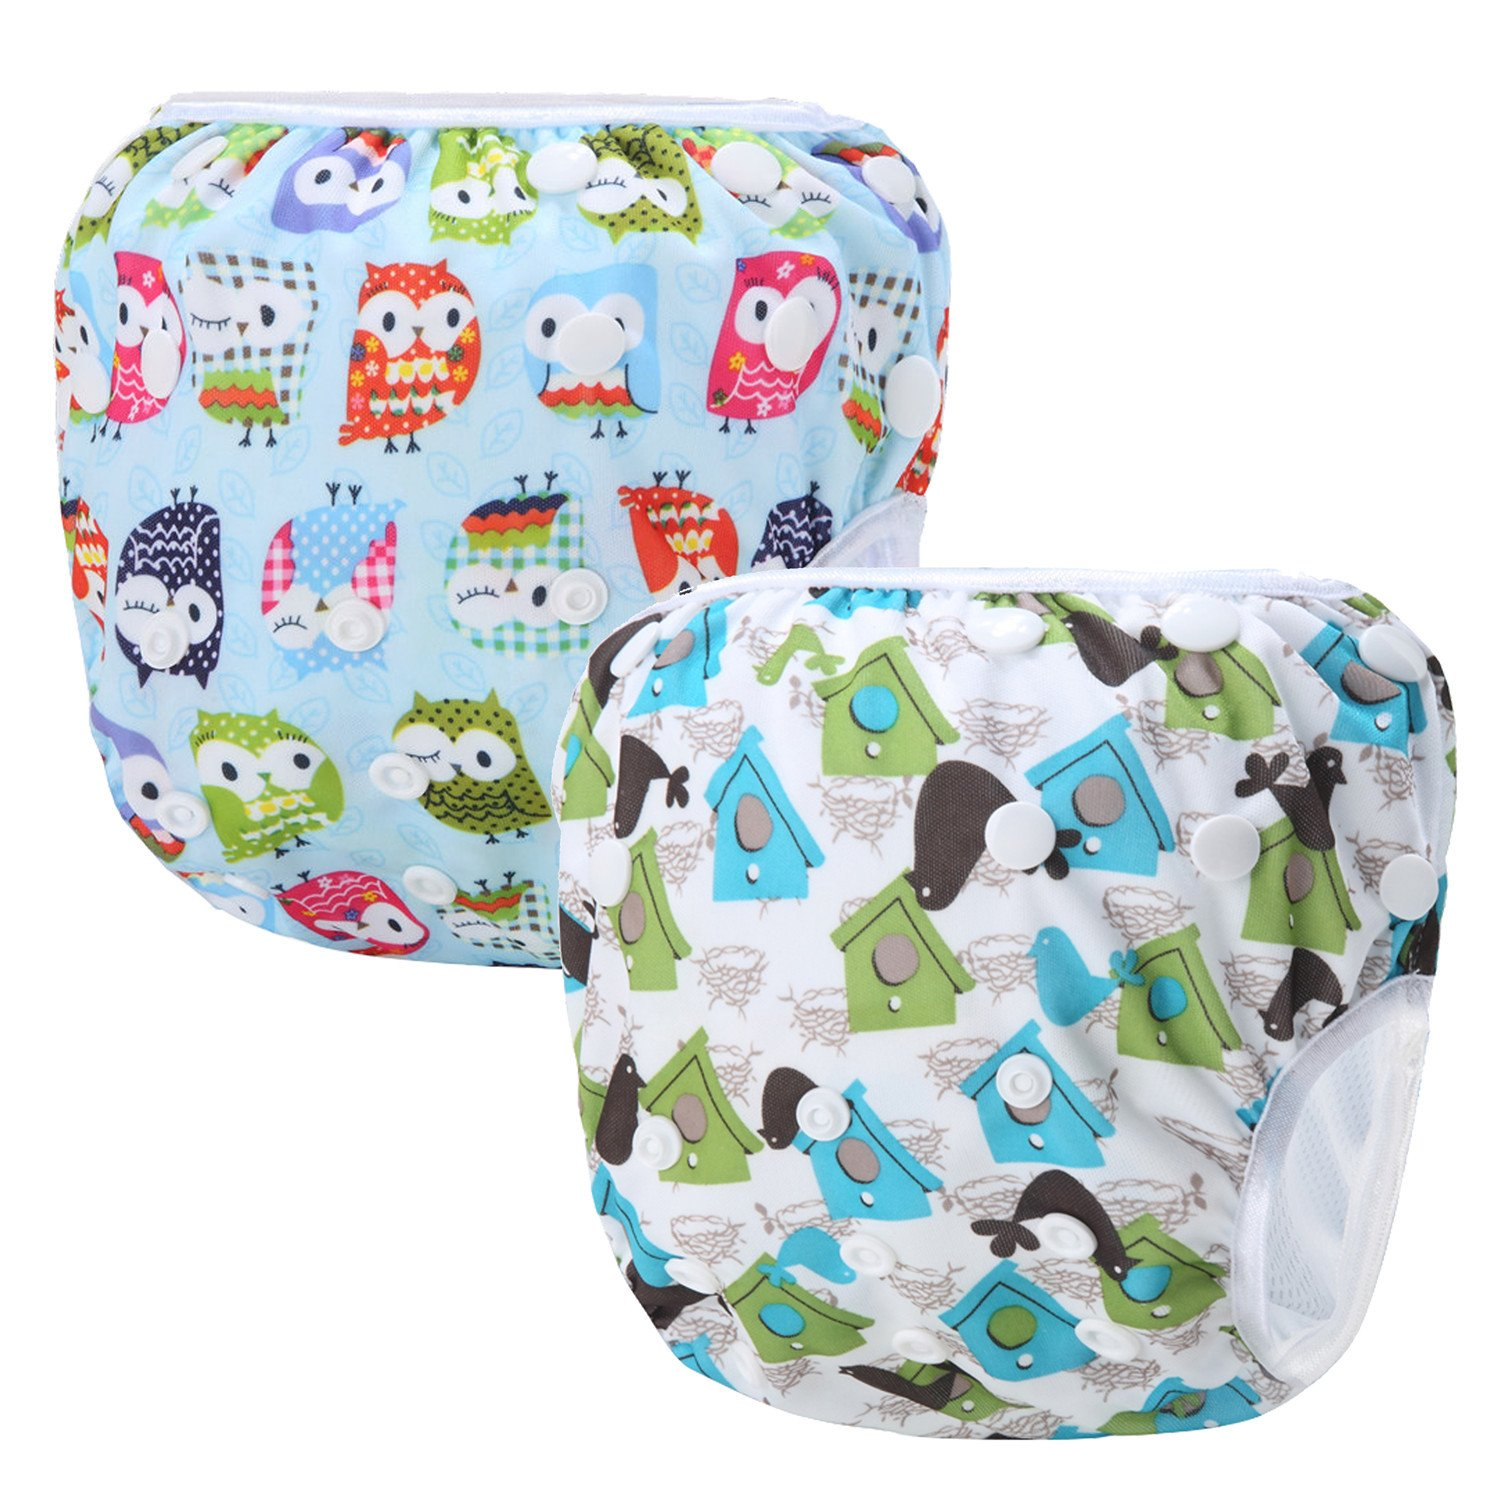 Storeofbaby Reusable Baby Swim Diapers Washable Cover for Little Swimmer 2 Pack Swimpant_1_14_EU